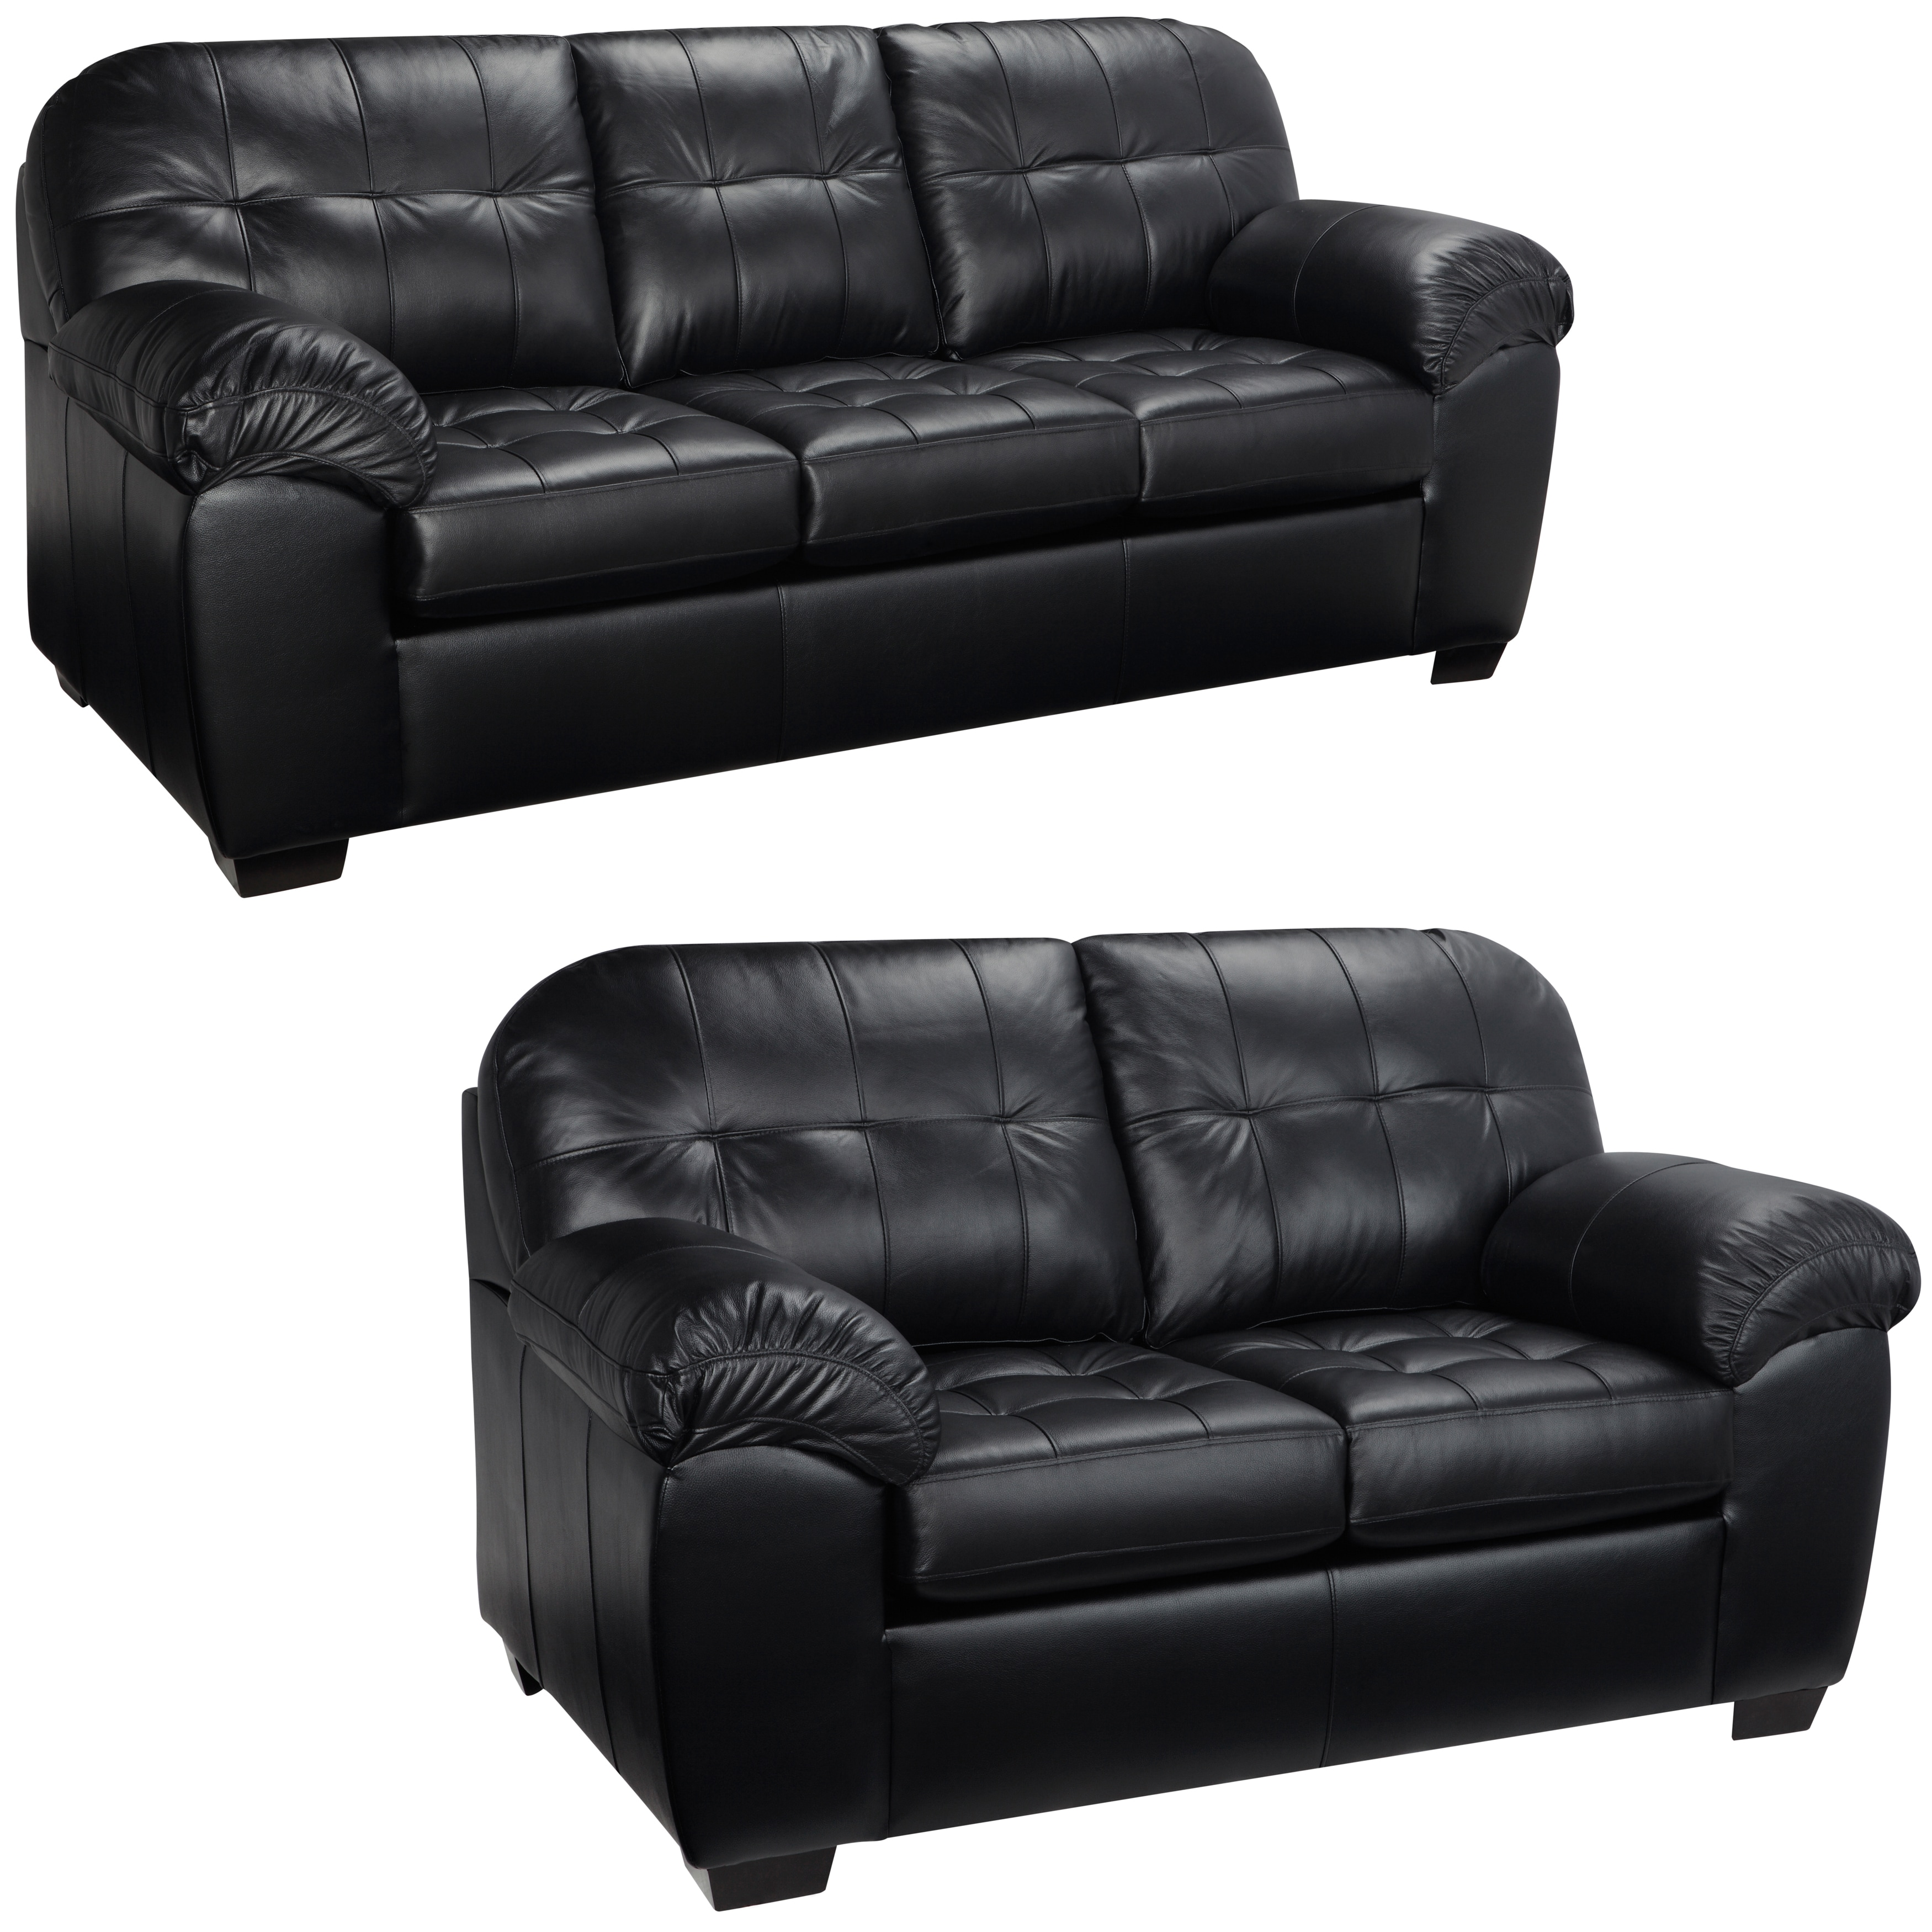 Emma Black Italian Leather Sofa And Loveseat Overstock Shopping Great Deals On Sofas Loveseats